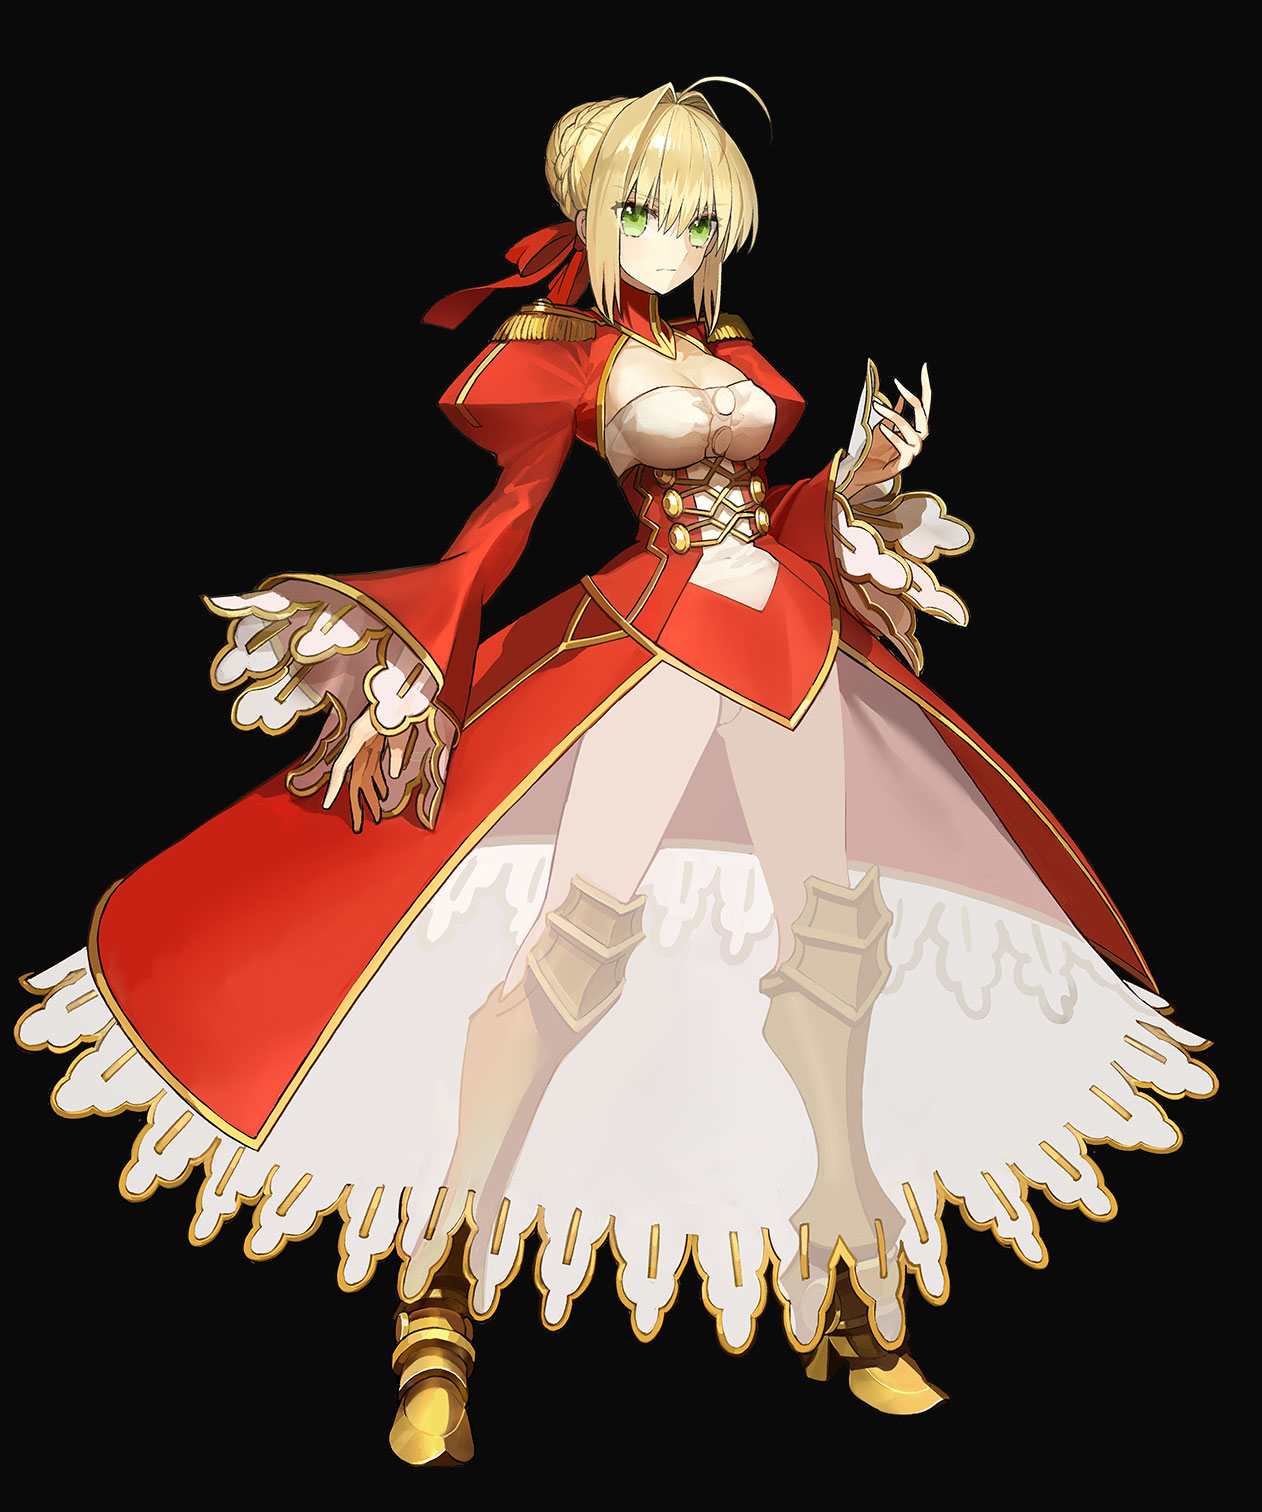 Fate/EXTELLA: The Umbral Star - Nero Claudius